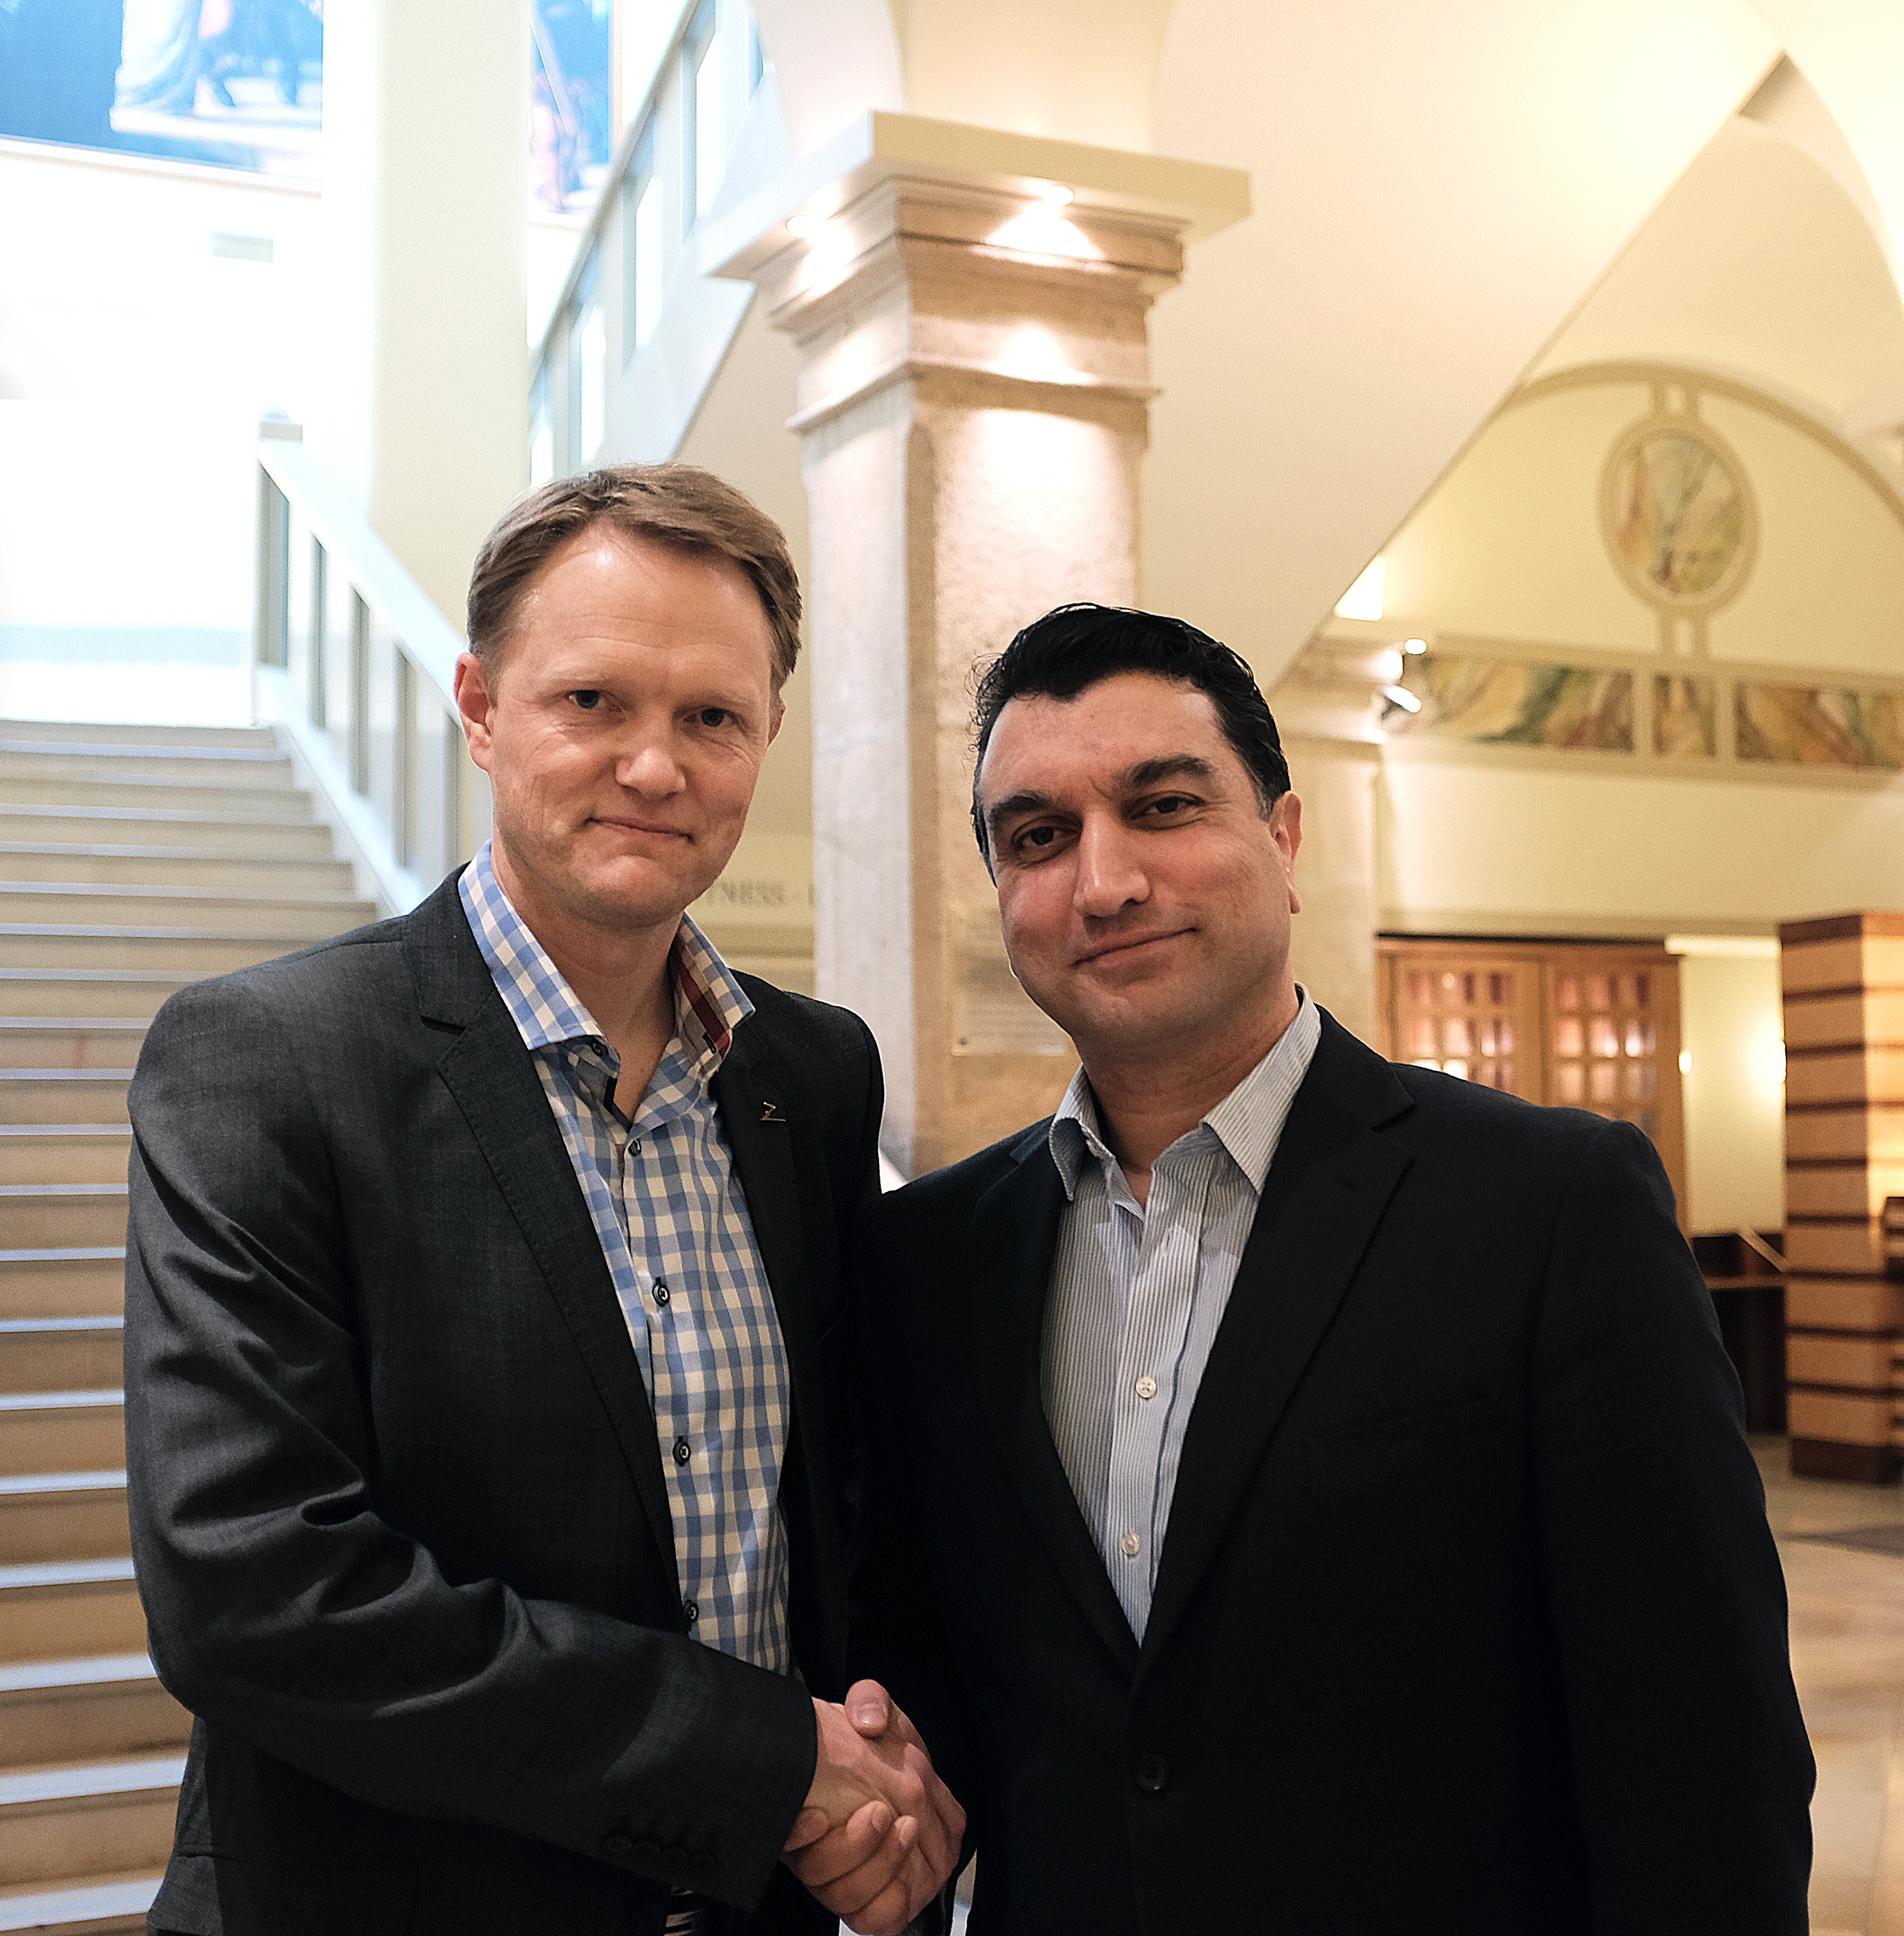 Brage W. Johansen, CEO of Zaptec and Jim Keravala, COO of Shackleton Energy Company in Vienna on March 12, 2015.